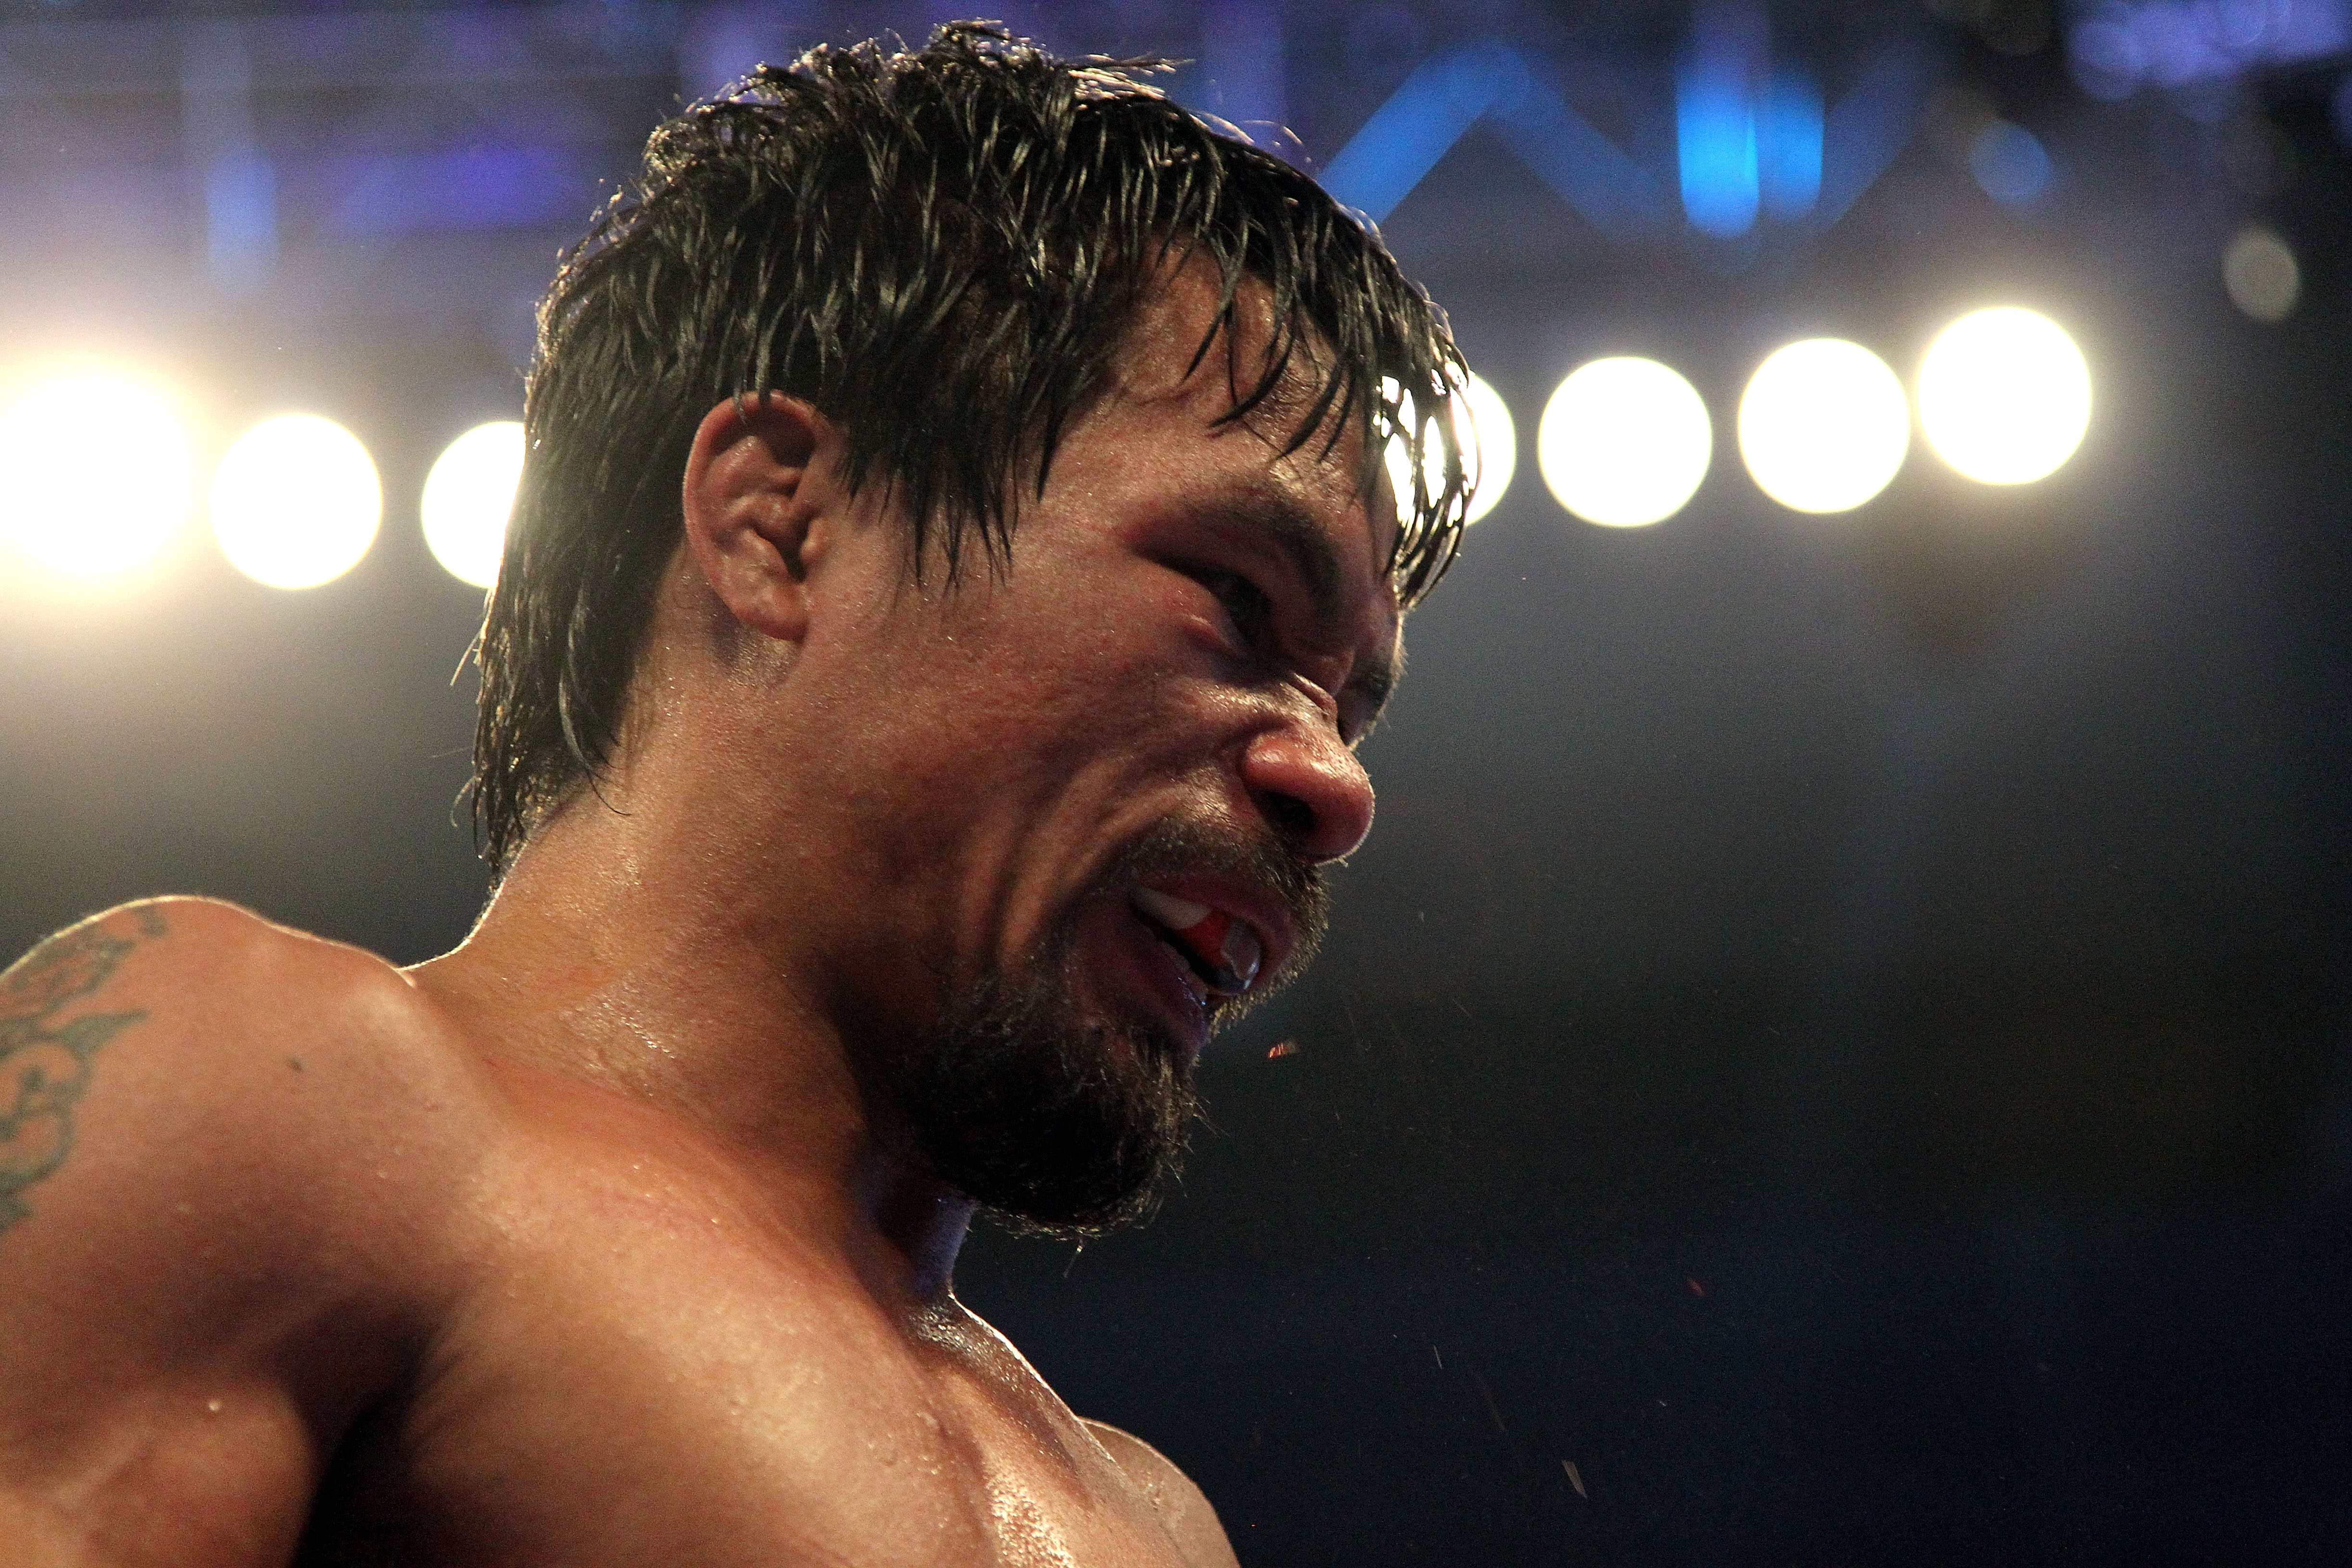 ARLINGTON, TX - MARCH 13:  Manny Pacquiao of the Philippines looks on in the ring against Joshua Clottey of Ghana during the WBO welterweight title fight at Cowboys Stadium on March 13, 2010 in Arlington, Texas. Pacquiao defeated Clottey by unanimous deci